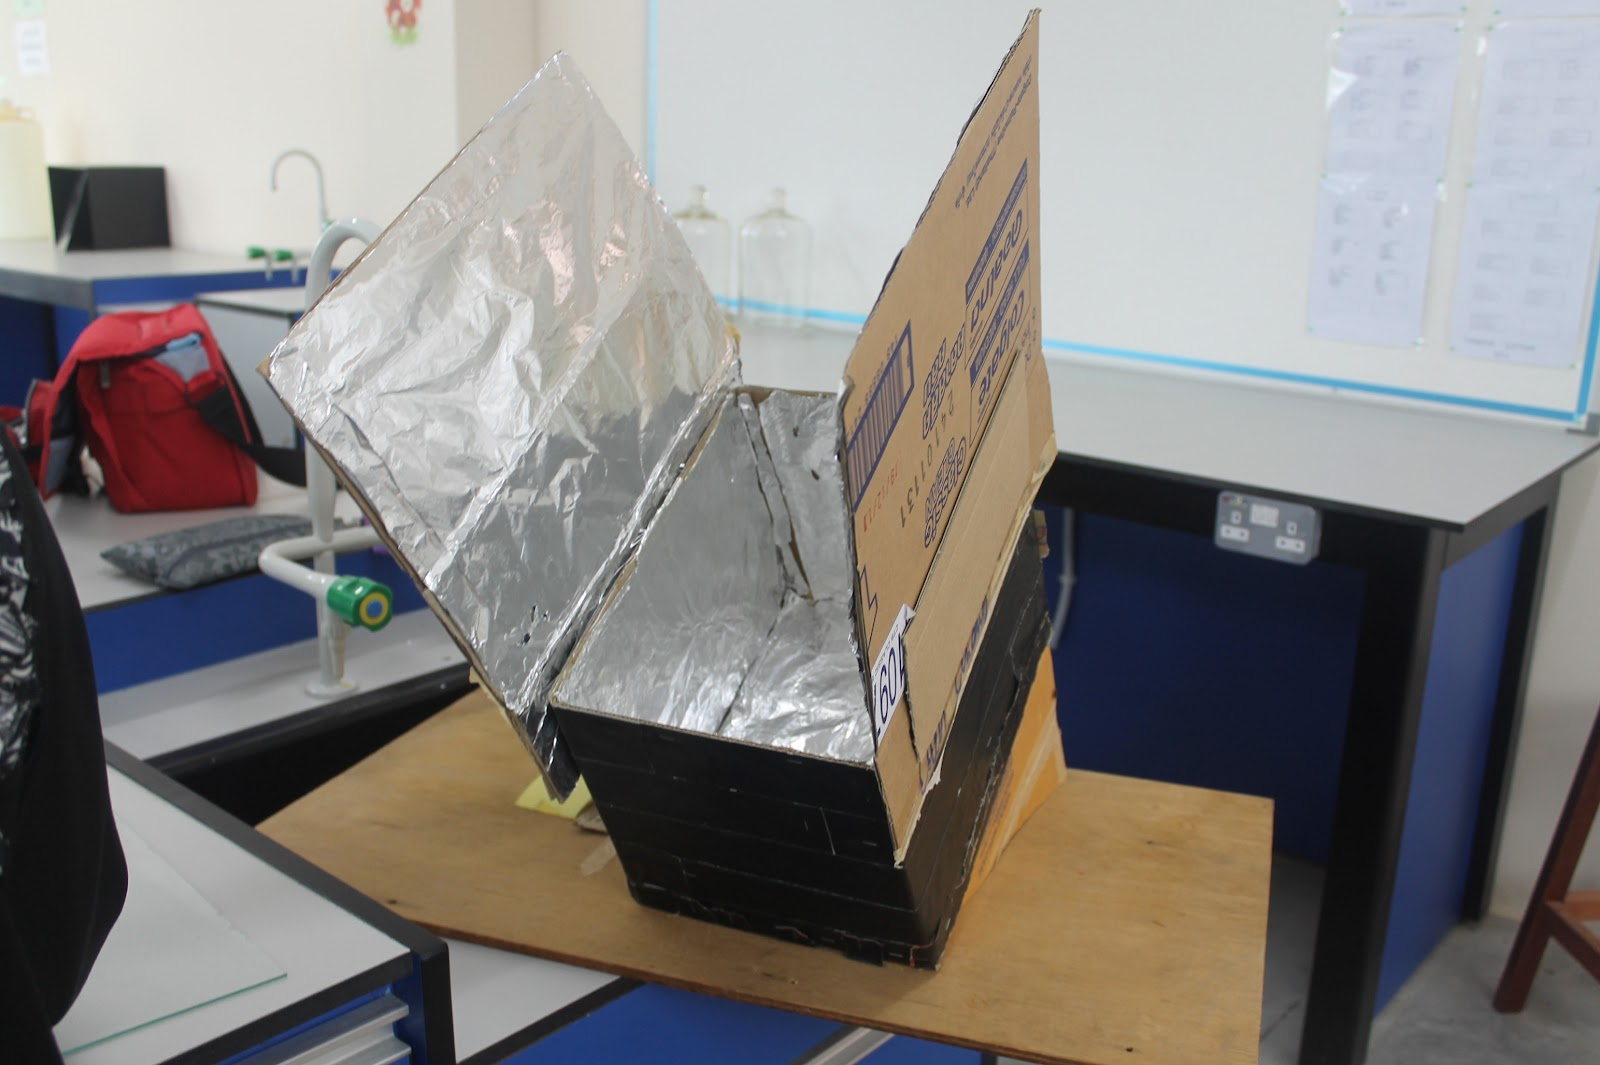 solar cooker project When the sun is hot and the kids are bored, you need an engaging project challenge your kids or students to design and build their own solar oven.